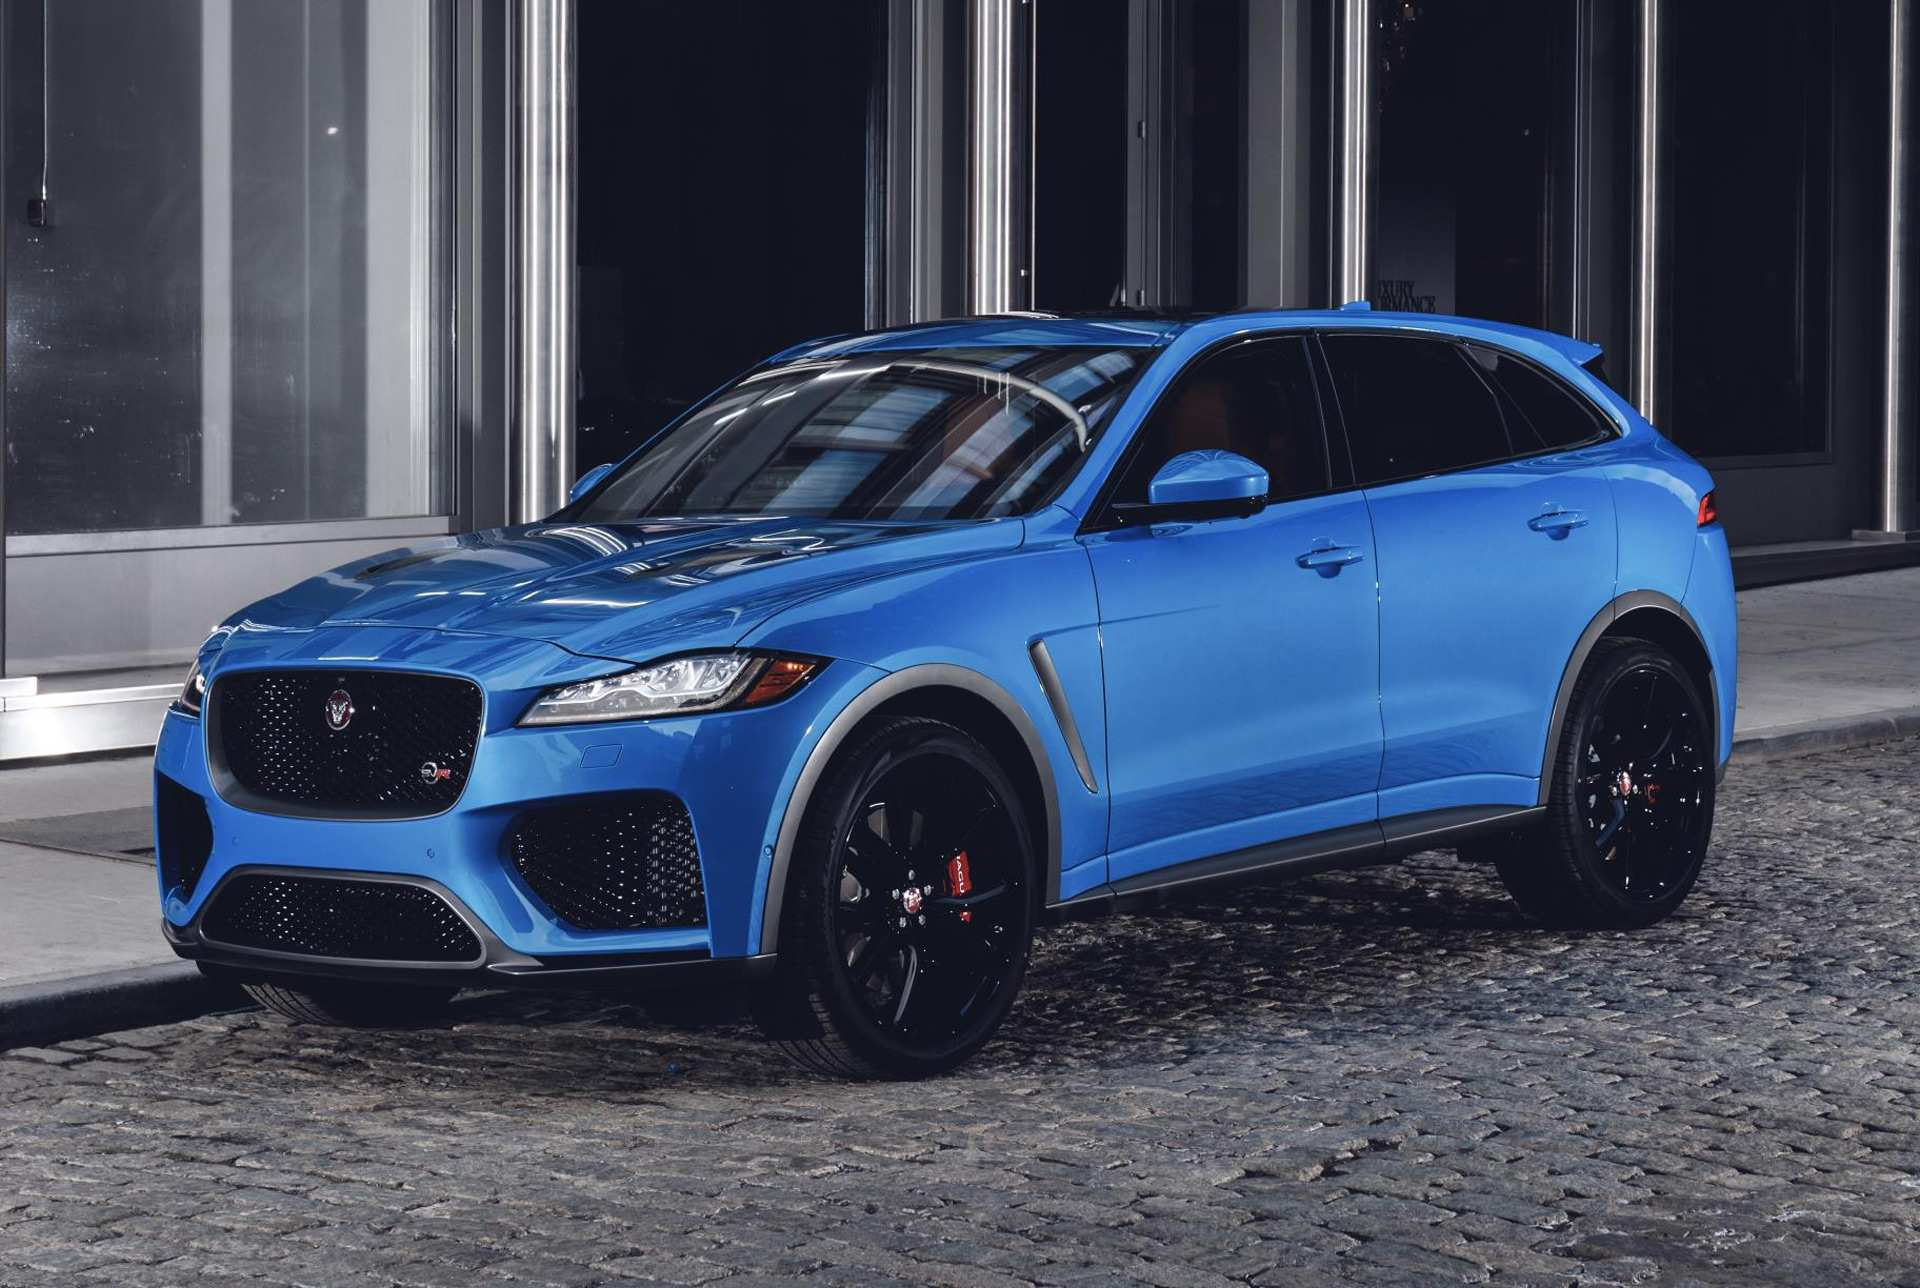 36 All New 2020 Jaguar F Pace Svr Release Date